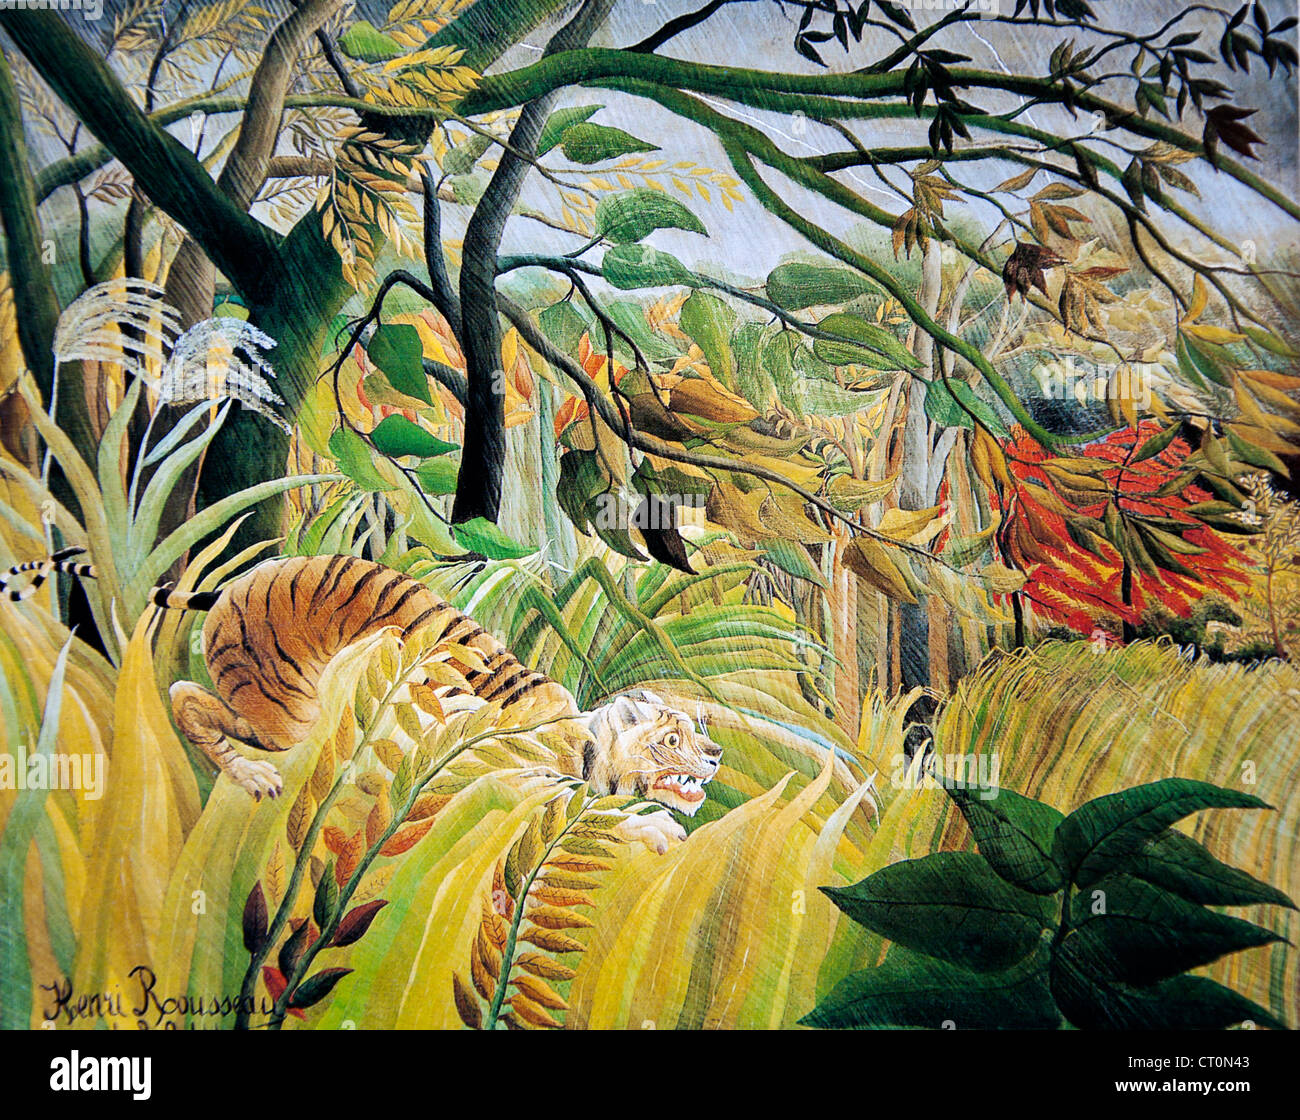 Henri Rousseau - Tiger in a Tropical Storm - Stock Image